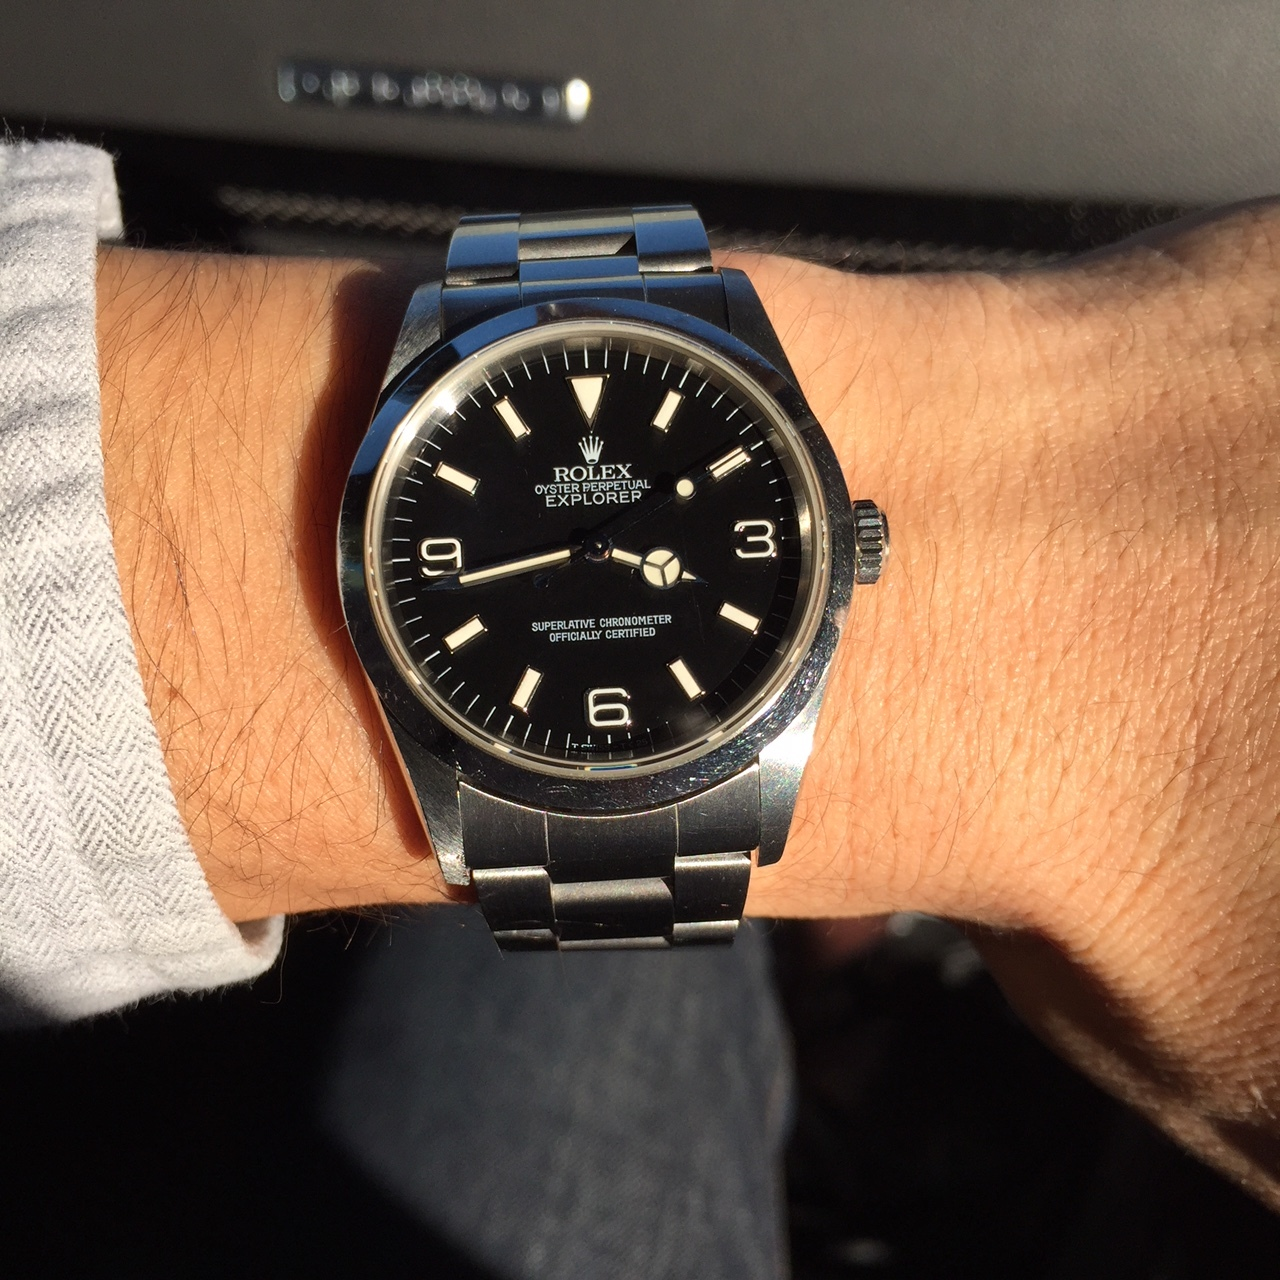 I quickly fell in love with my first Rolex, the 14270 Explorer